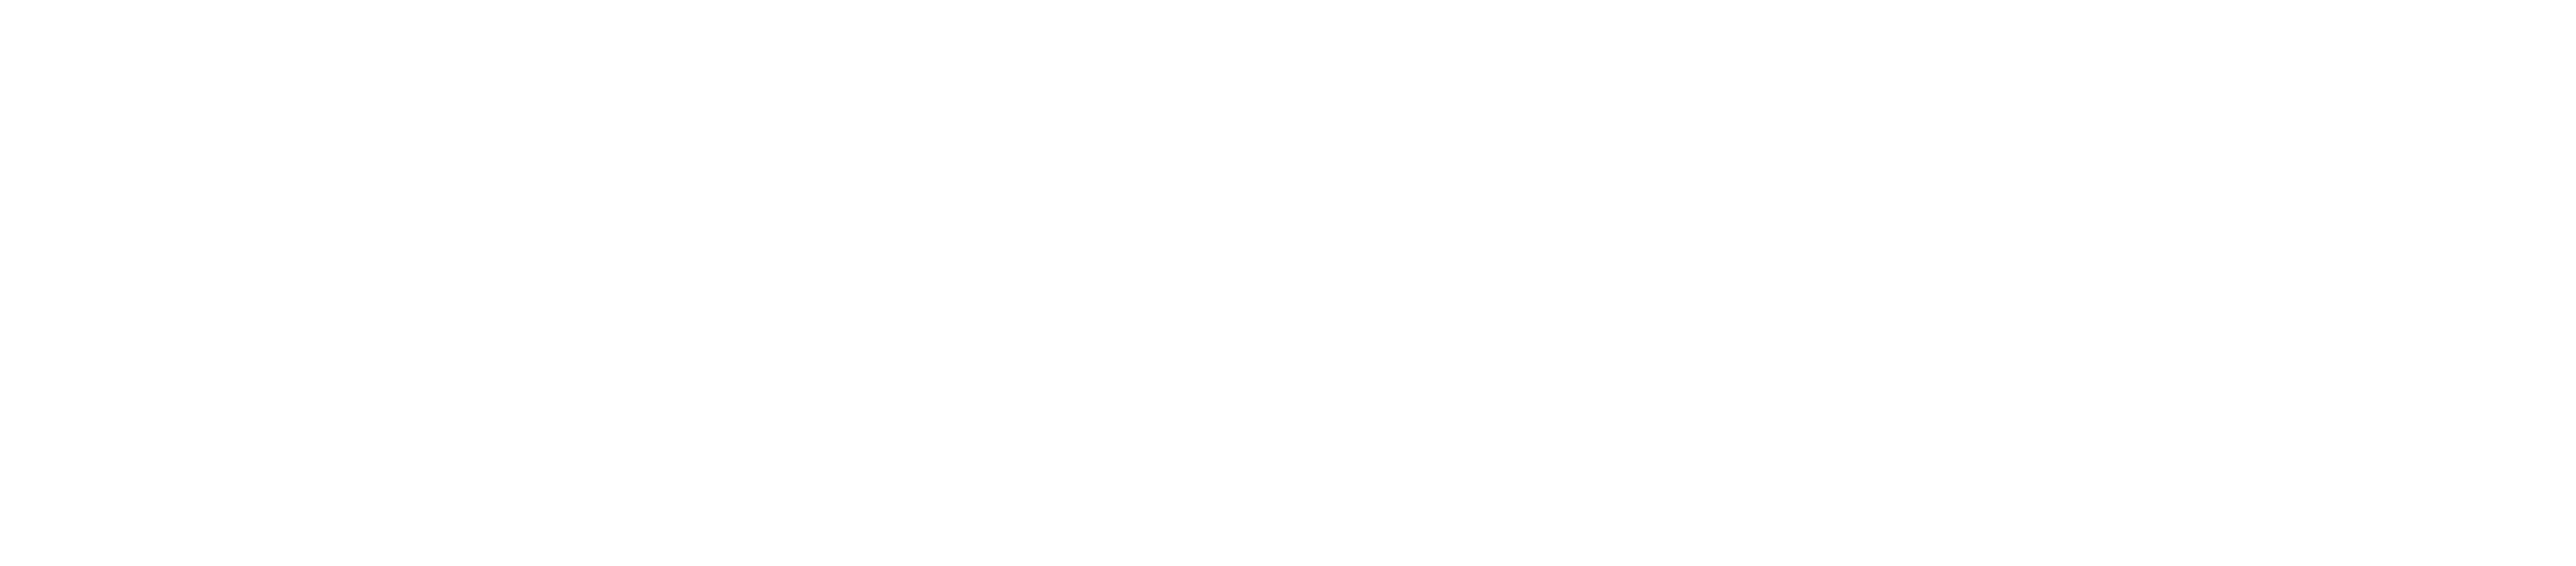 pacto-global-chile-sipp